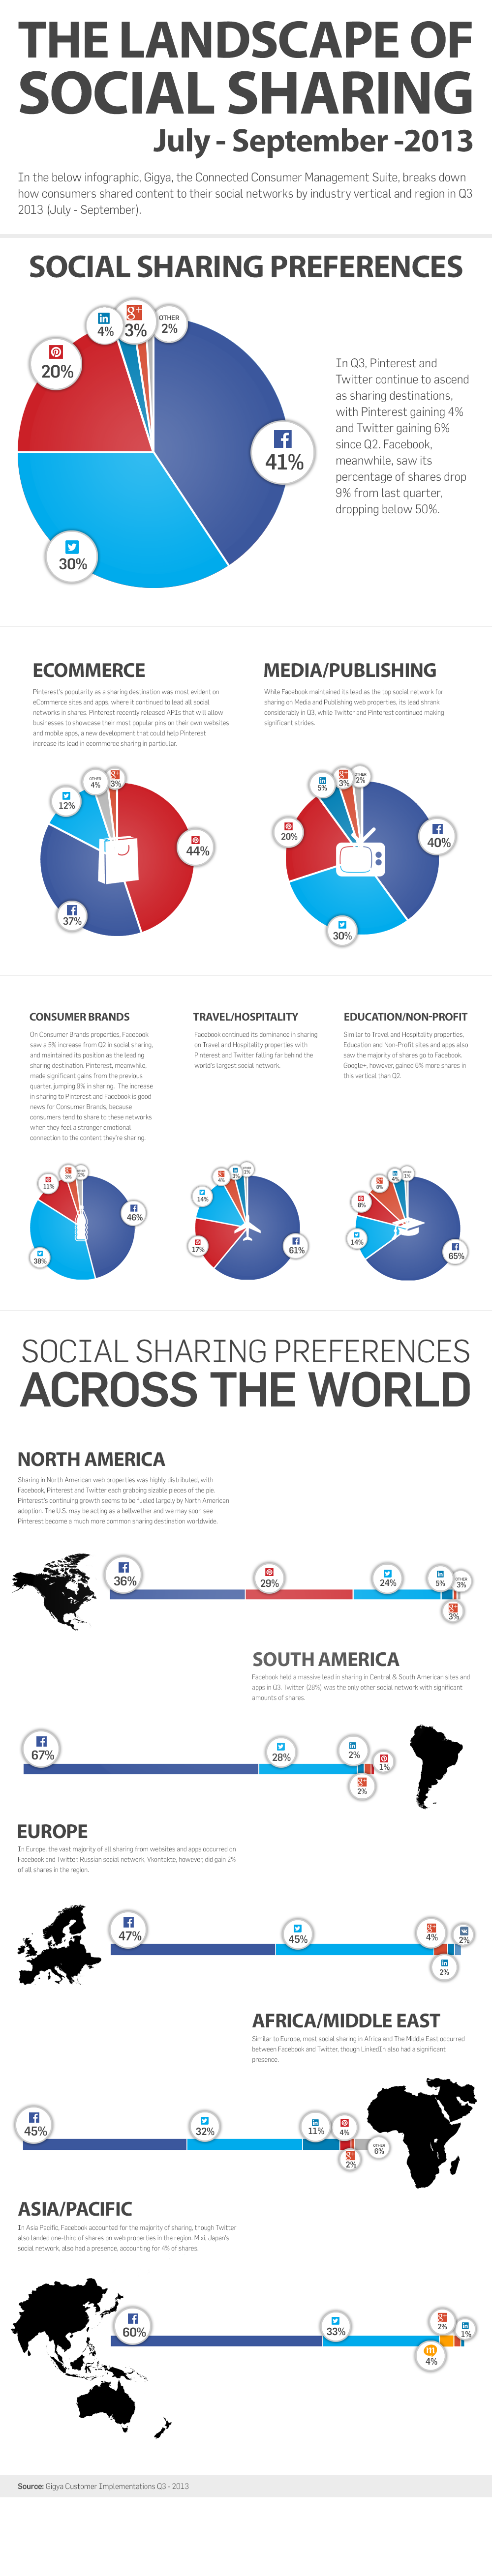 Trends in social sharing